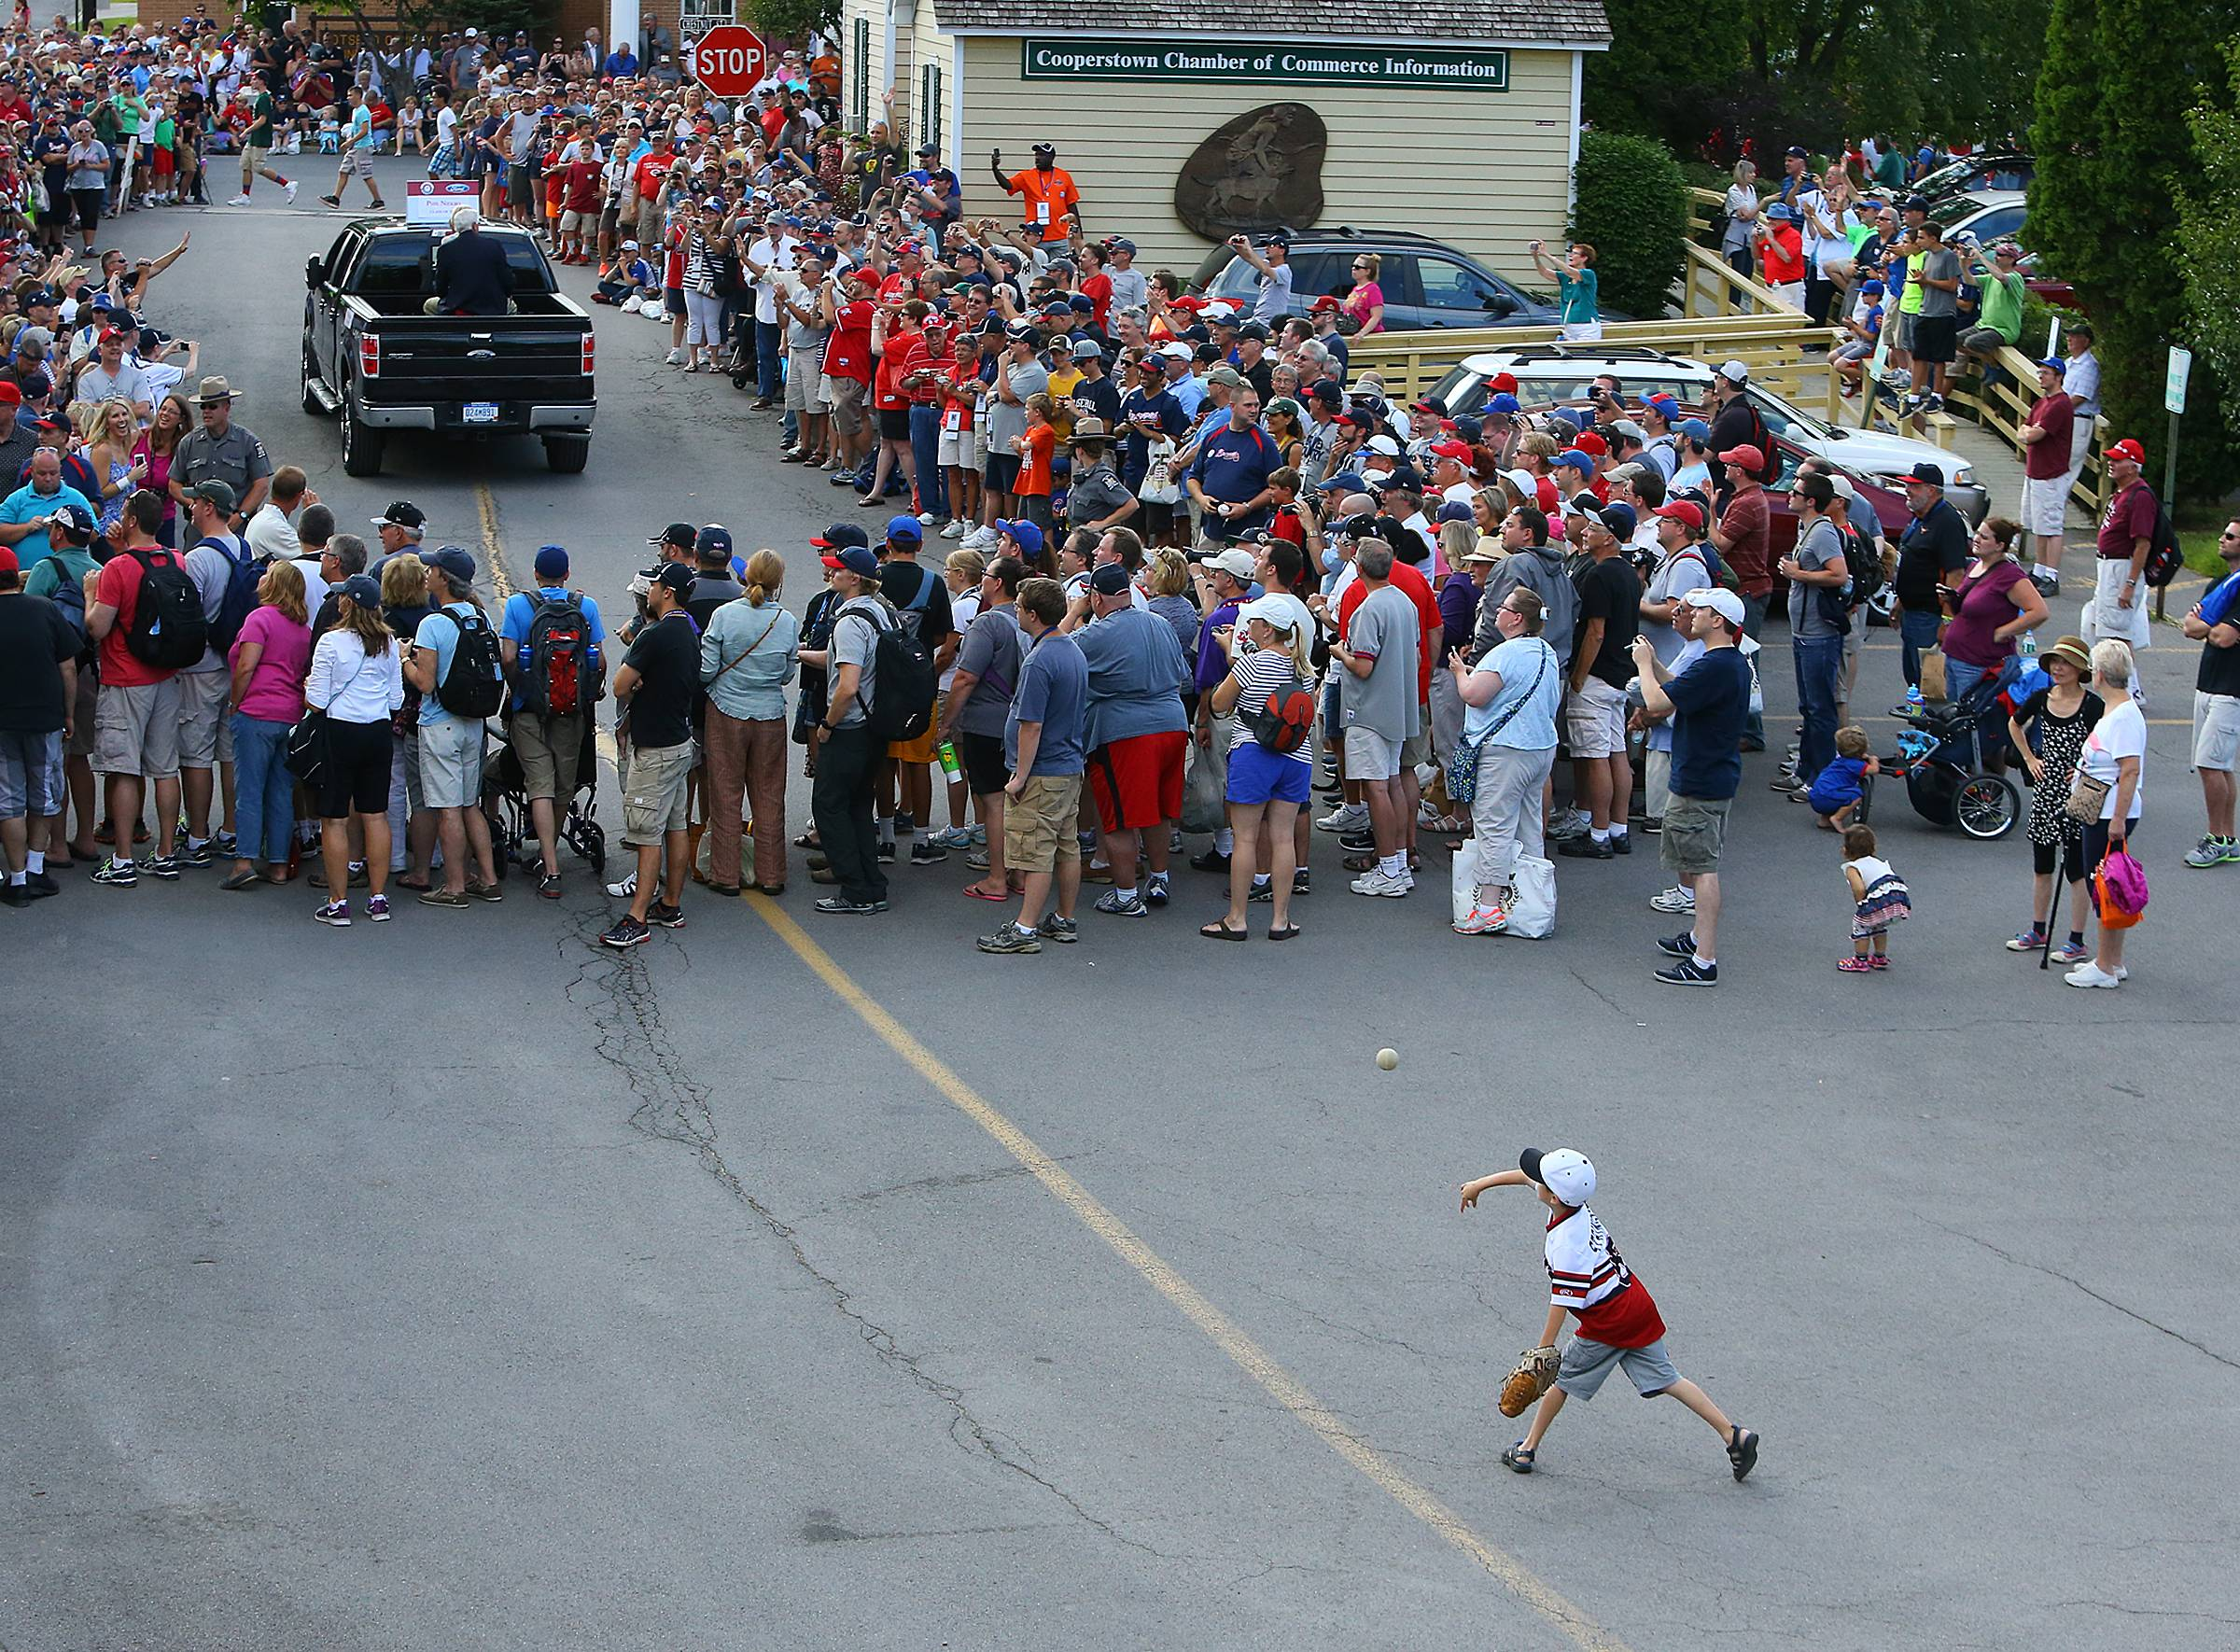 J.T. Stringer, 7, lower right, of Chicago, plays baseball in the street while the Hall of Fame Legends Parade passes by on the way to Main Street on Saturday, July 26, 2014, in Cooperstown, N.Y.